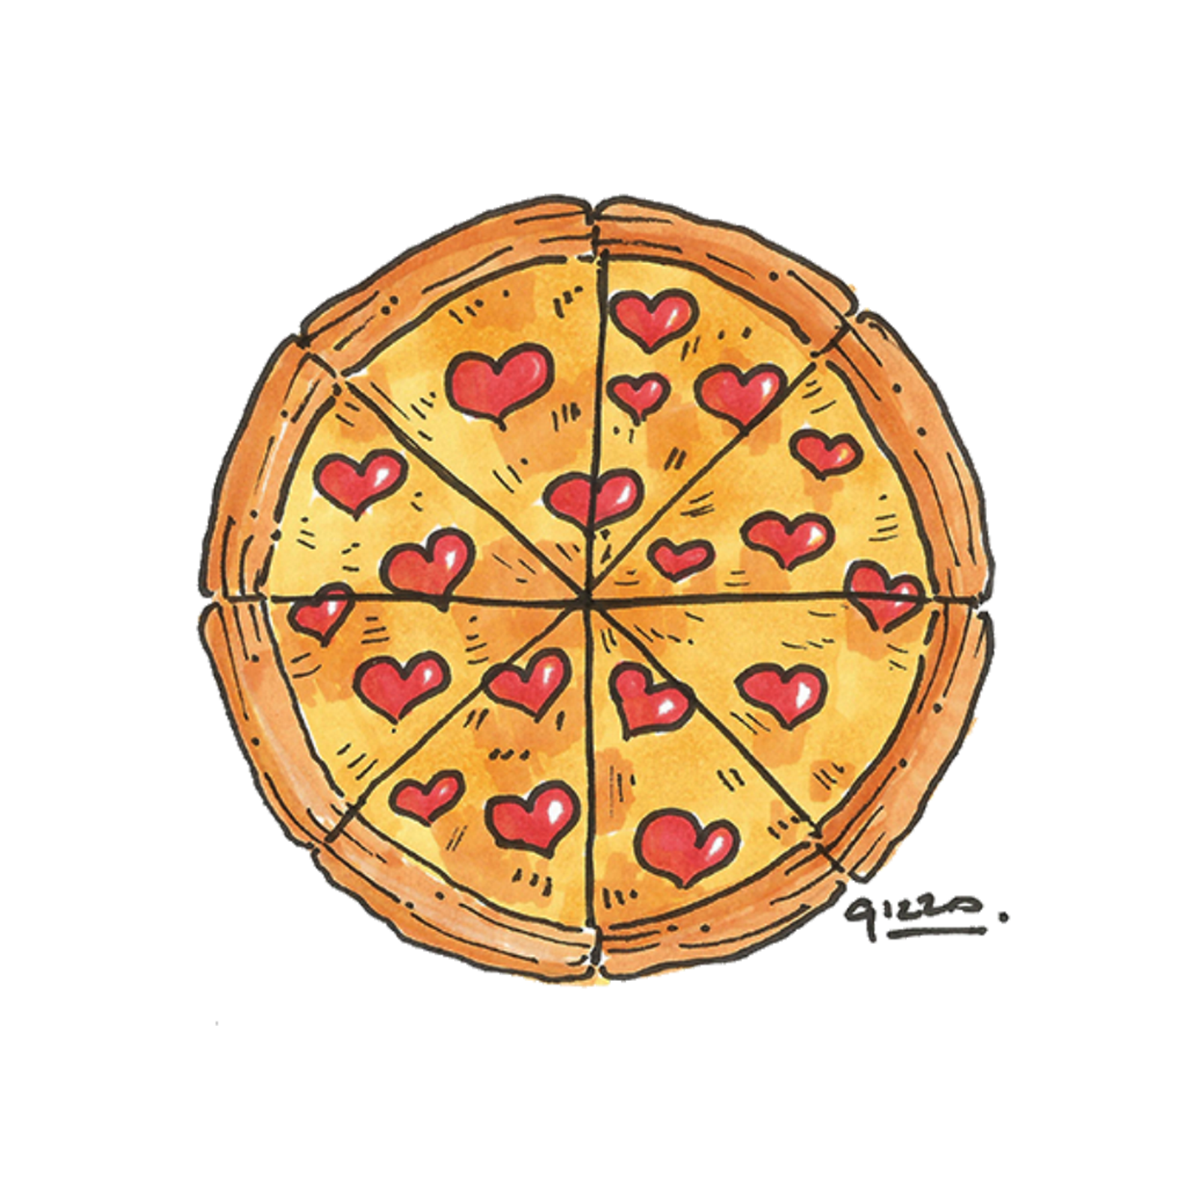 Pizza hut book it dragon clipart graphic royalty free library Pizza love - Illustration for Valentine's on Behance | NYP_Ideas ... graphic royalty free library